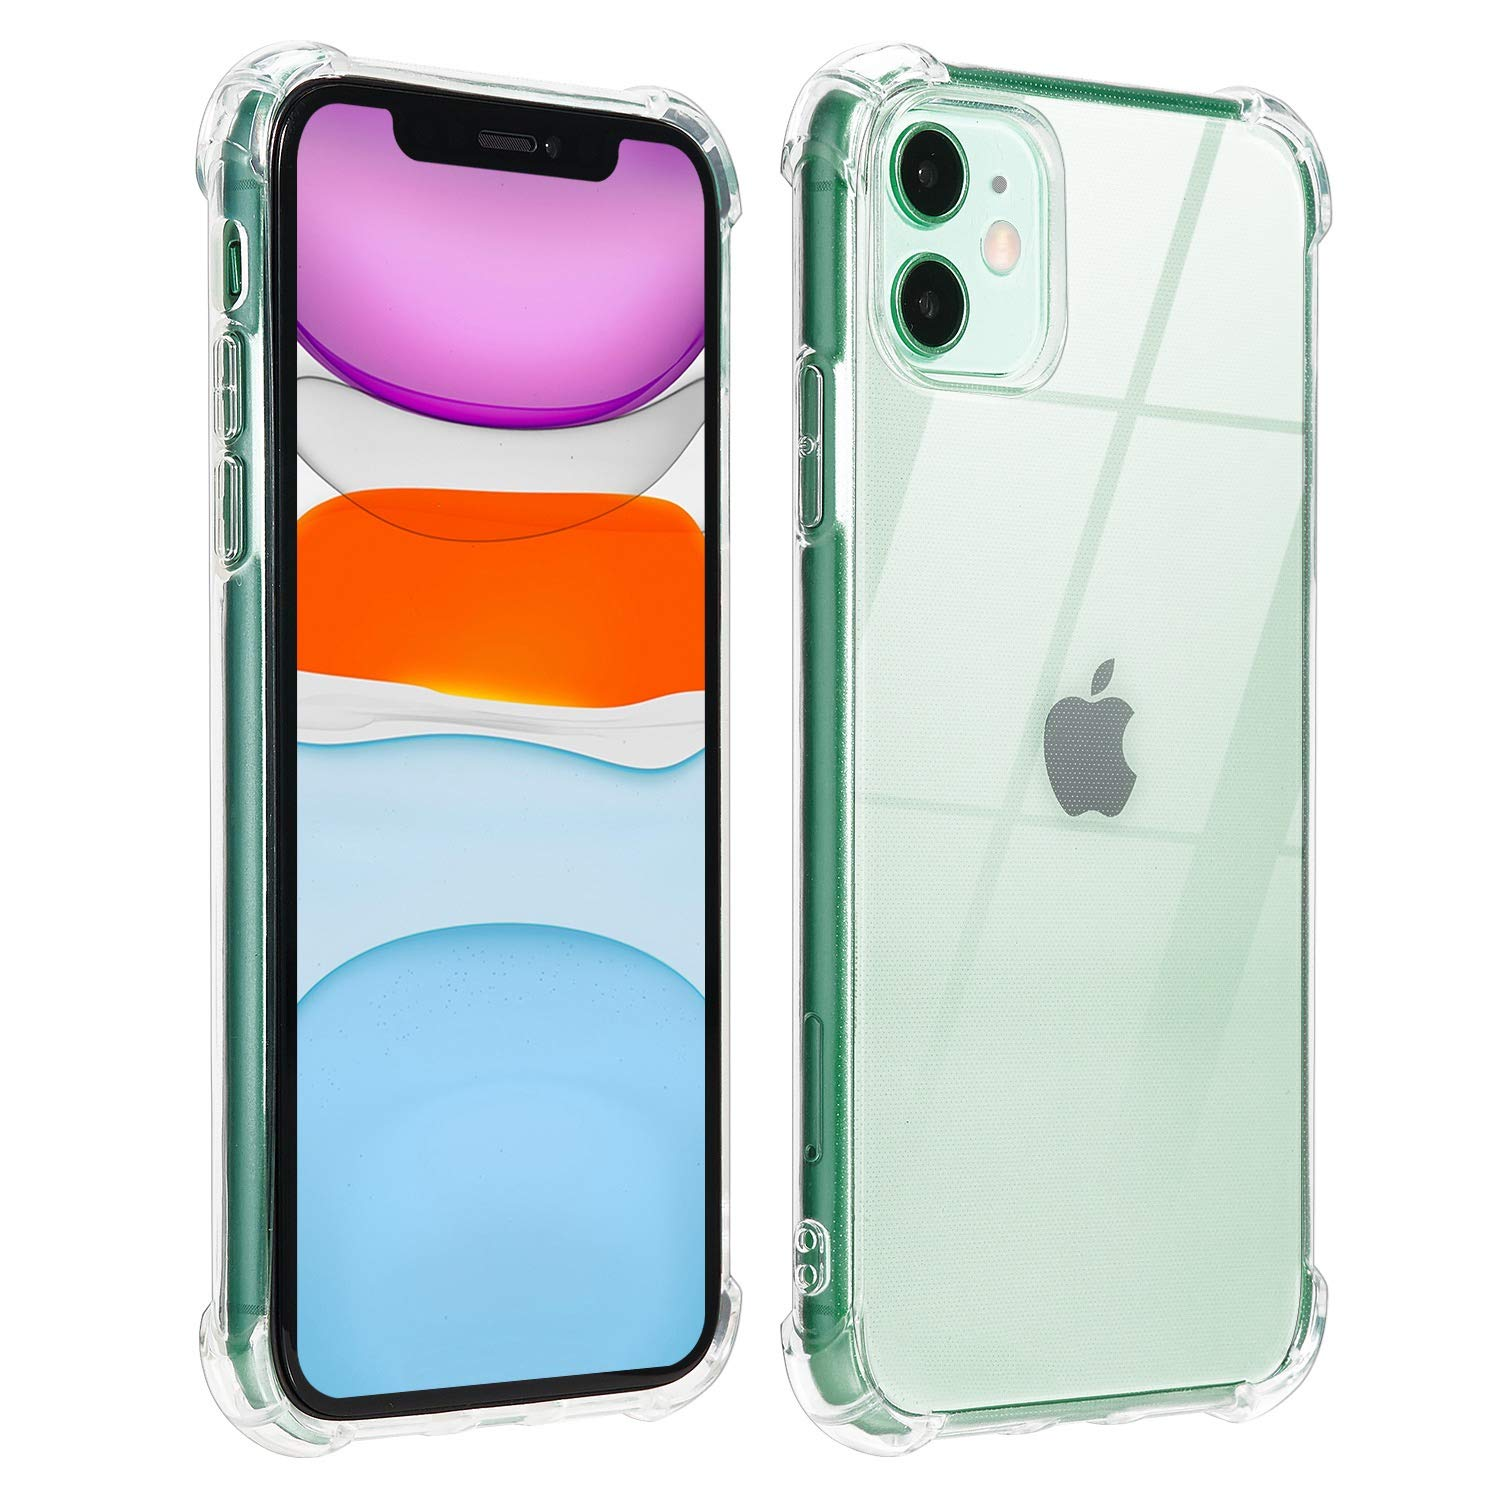 JESOHO Compatible with iPhone 11 Case, Ultra Slim Thin Hard PC Protective Cover Case for iPhone 11 Shockproof Clear Case Cover for iPhone 11 6.1 inch